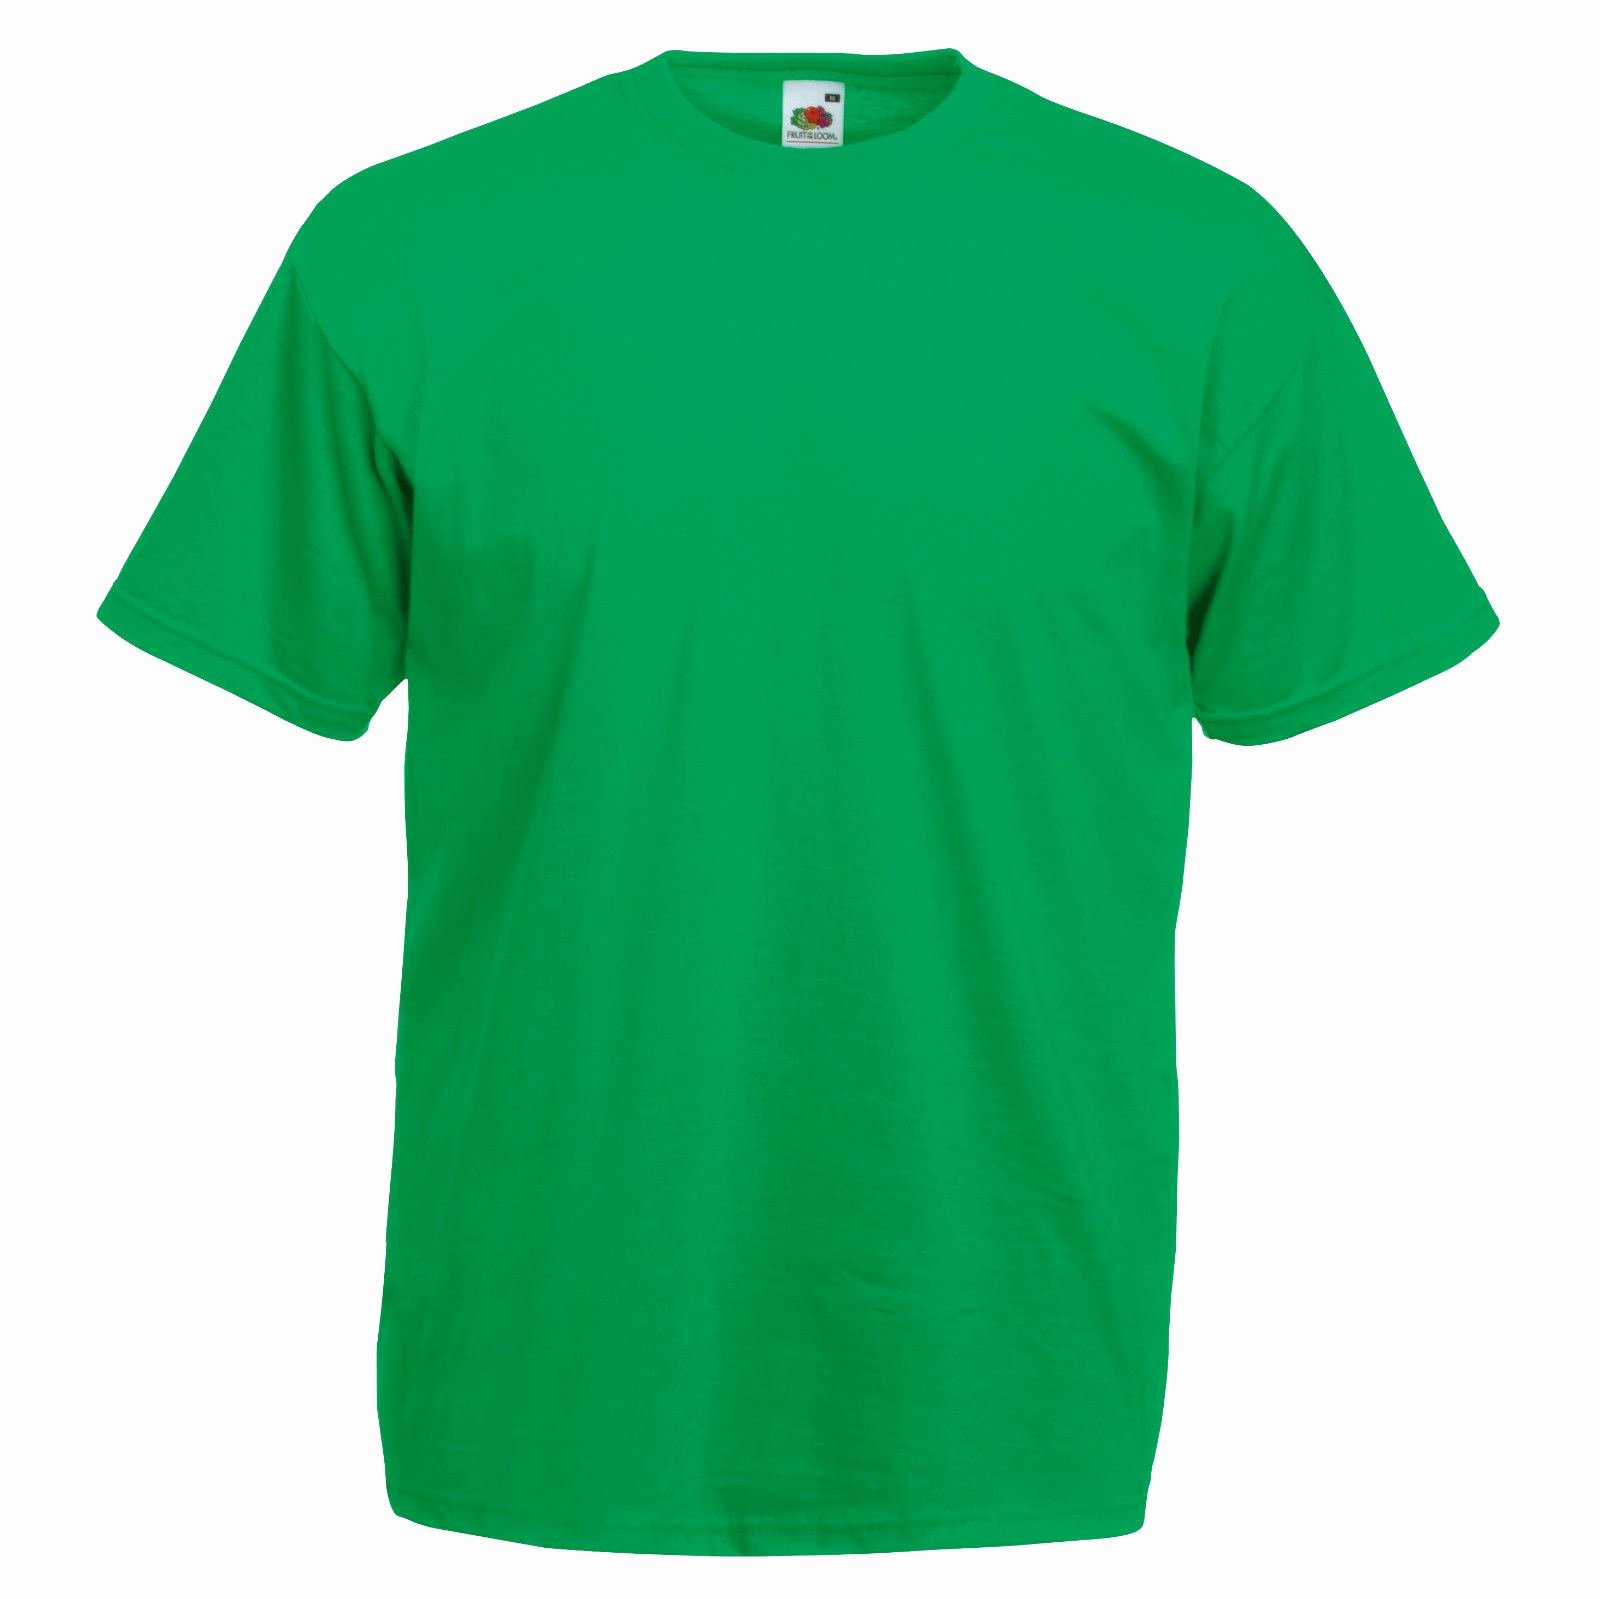 Green T Shirt Template Fresh the Gallery for Kelly Green T Shirt Template